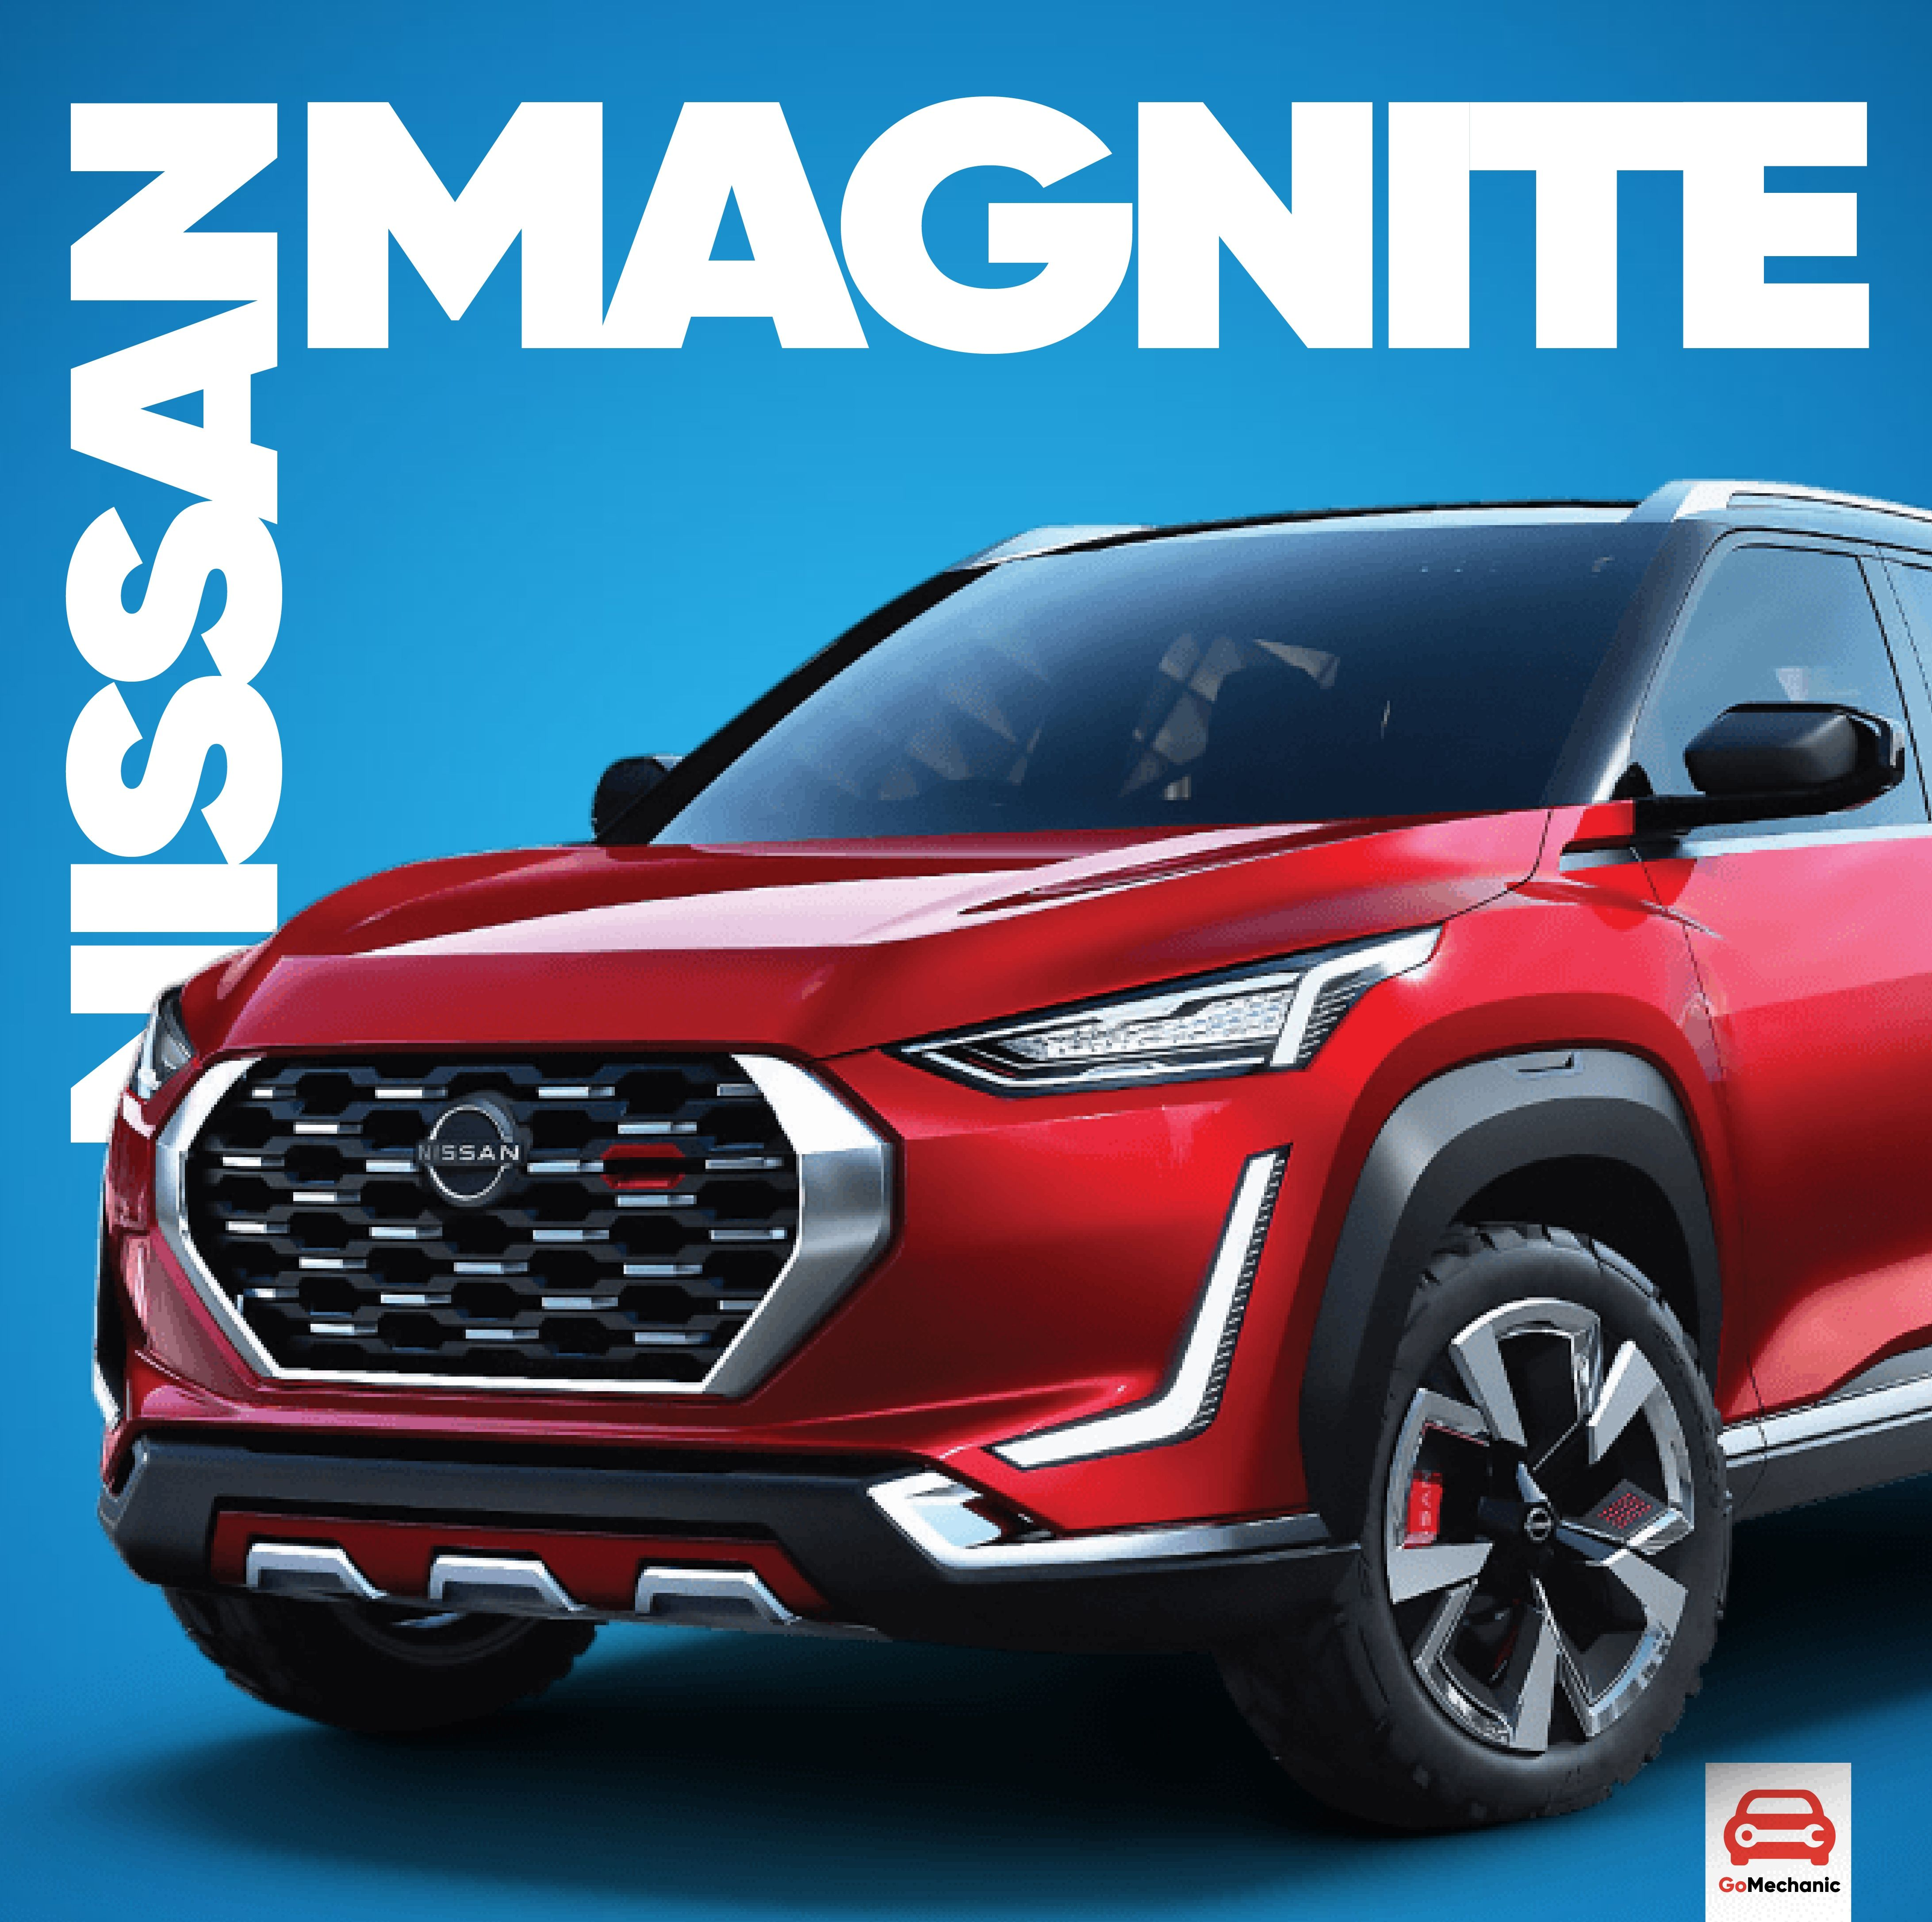 Top 10 Most Googled Questions About The Nissan Magnite Answered In 2021 Nissan This Or That Questions Automobile Industry